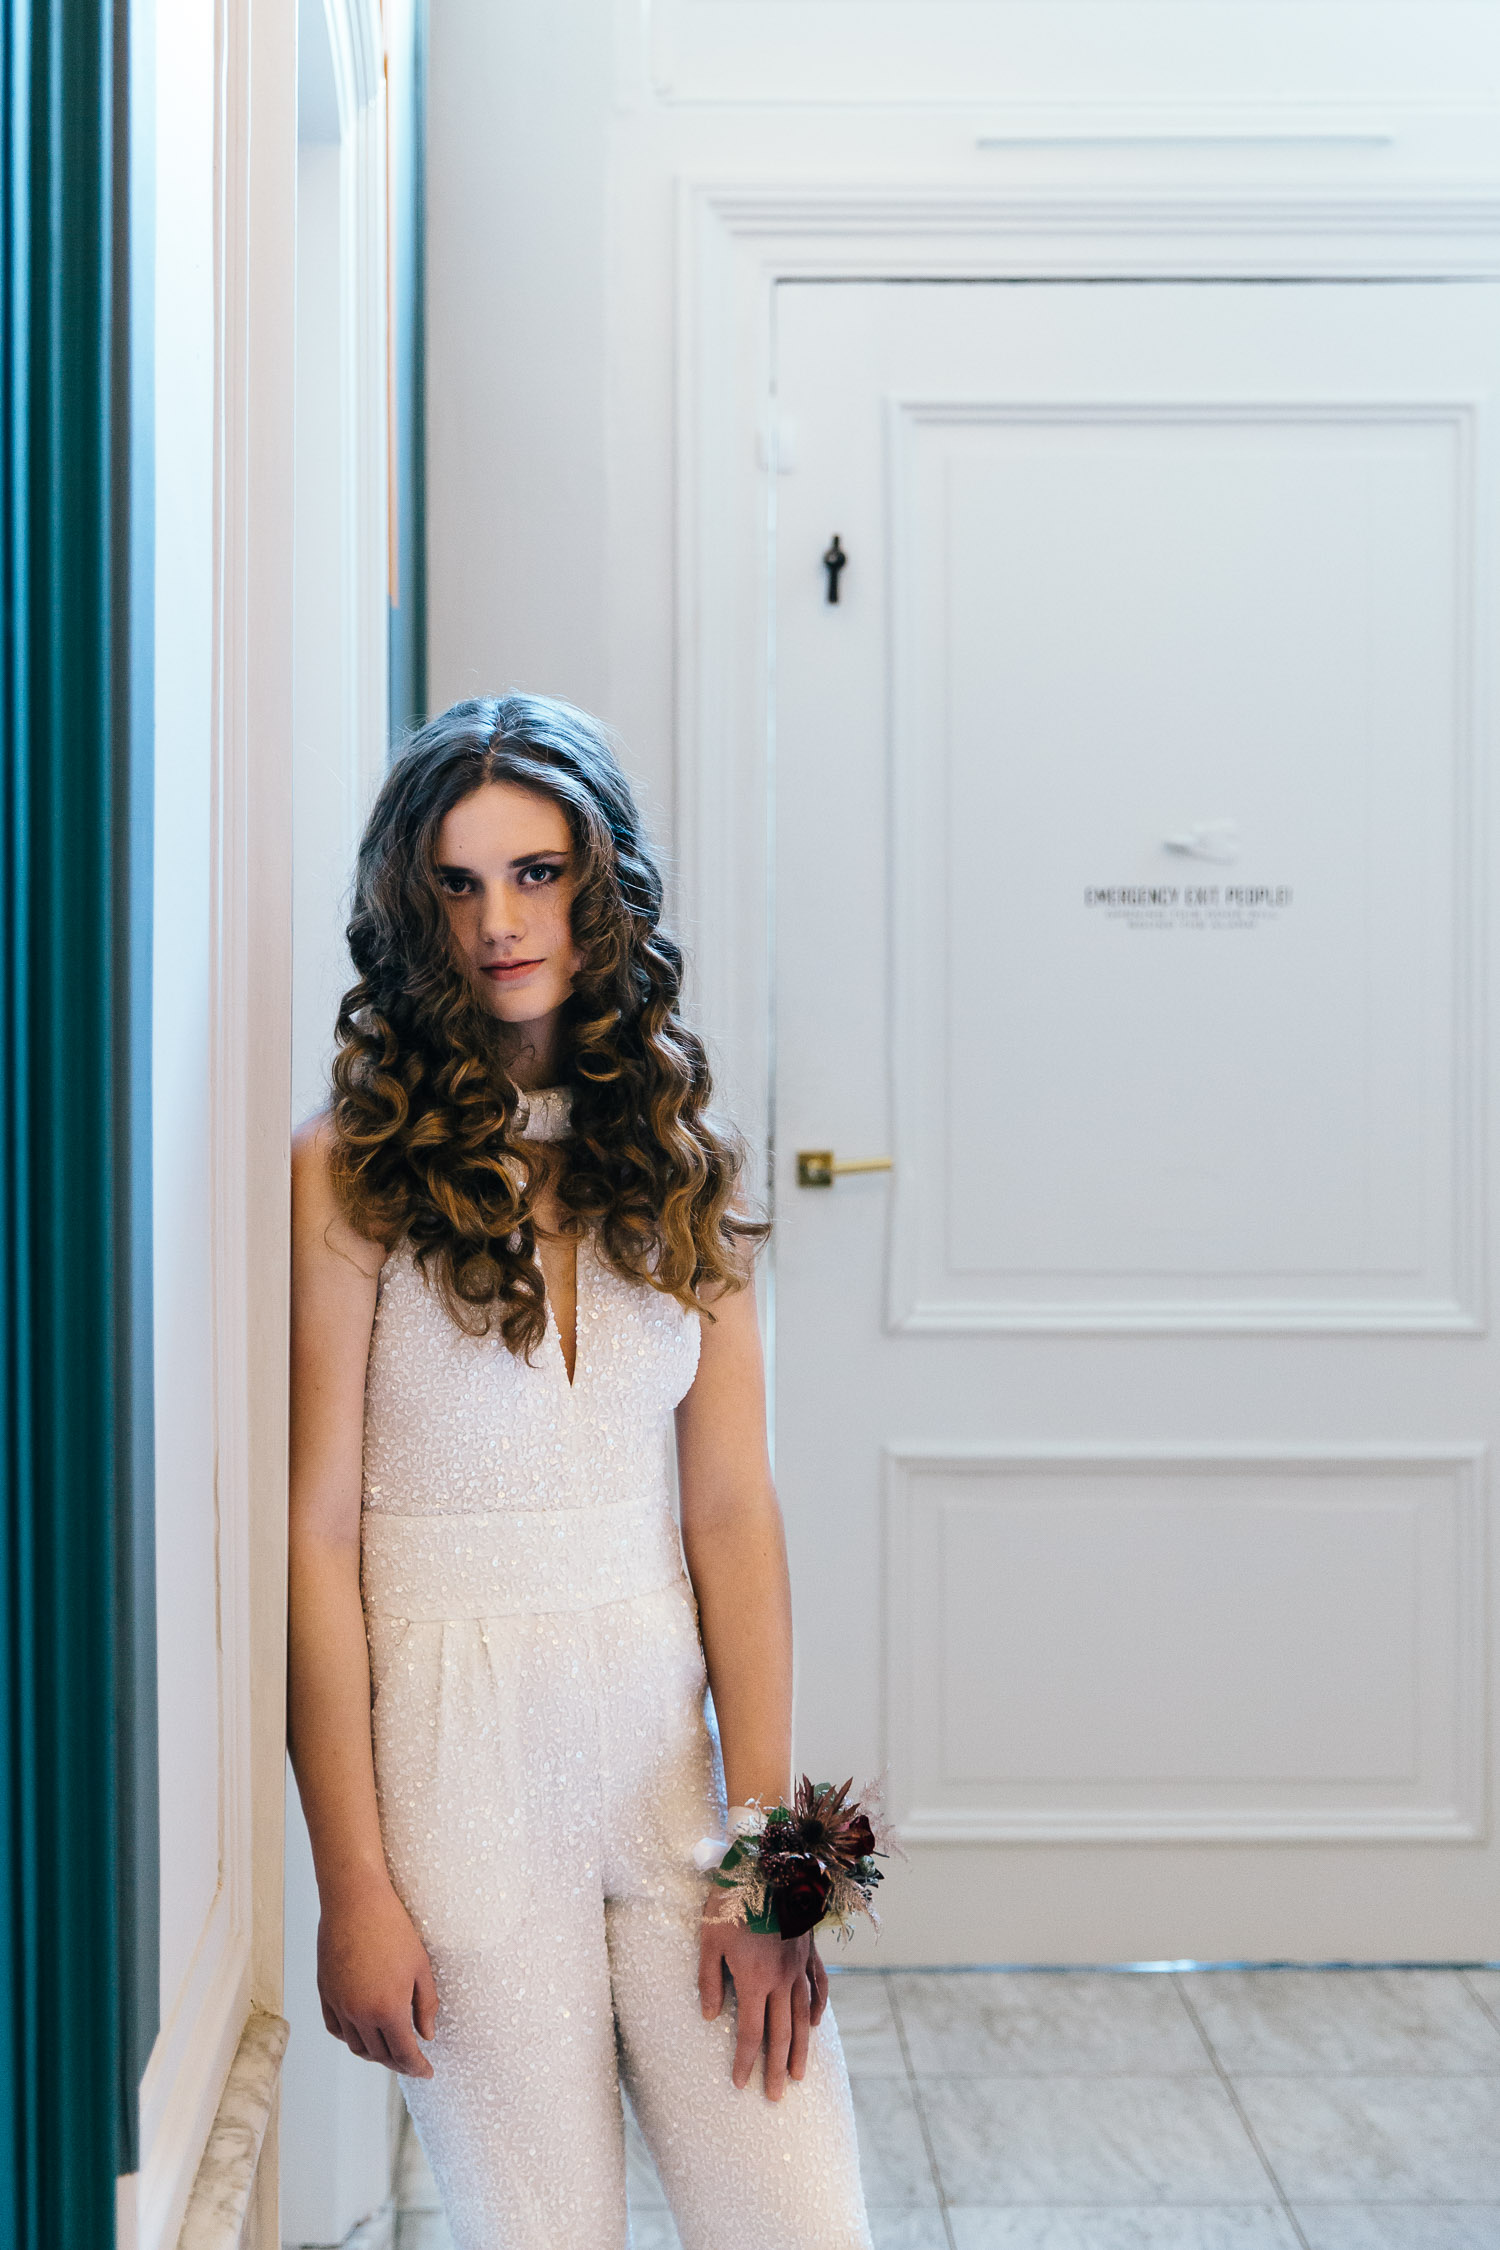 Wedding-industry-shoot-by-On-a-hazy-morning-Amsterdam-5.jpg